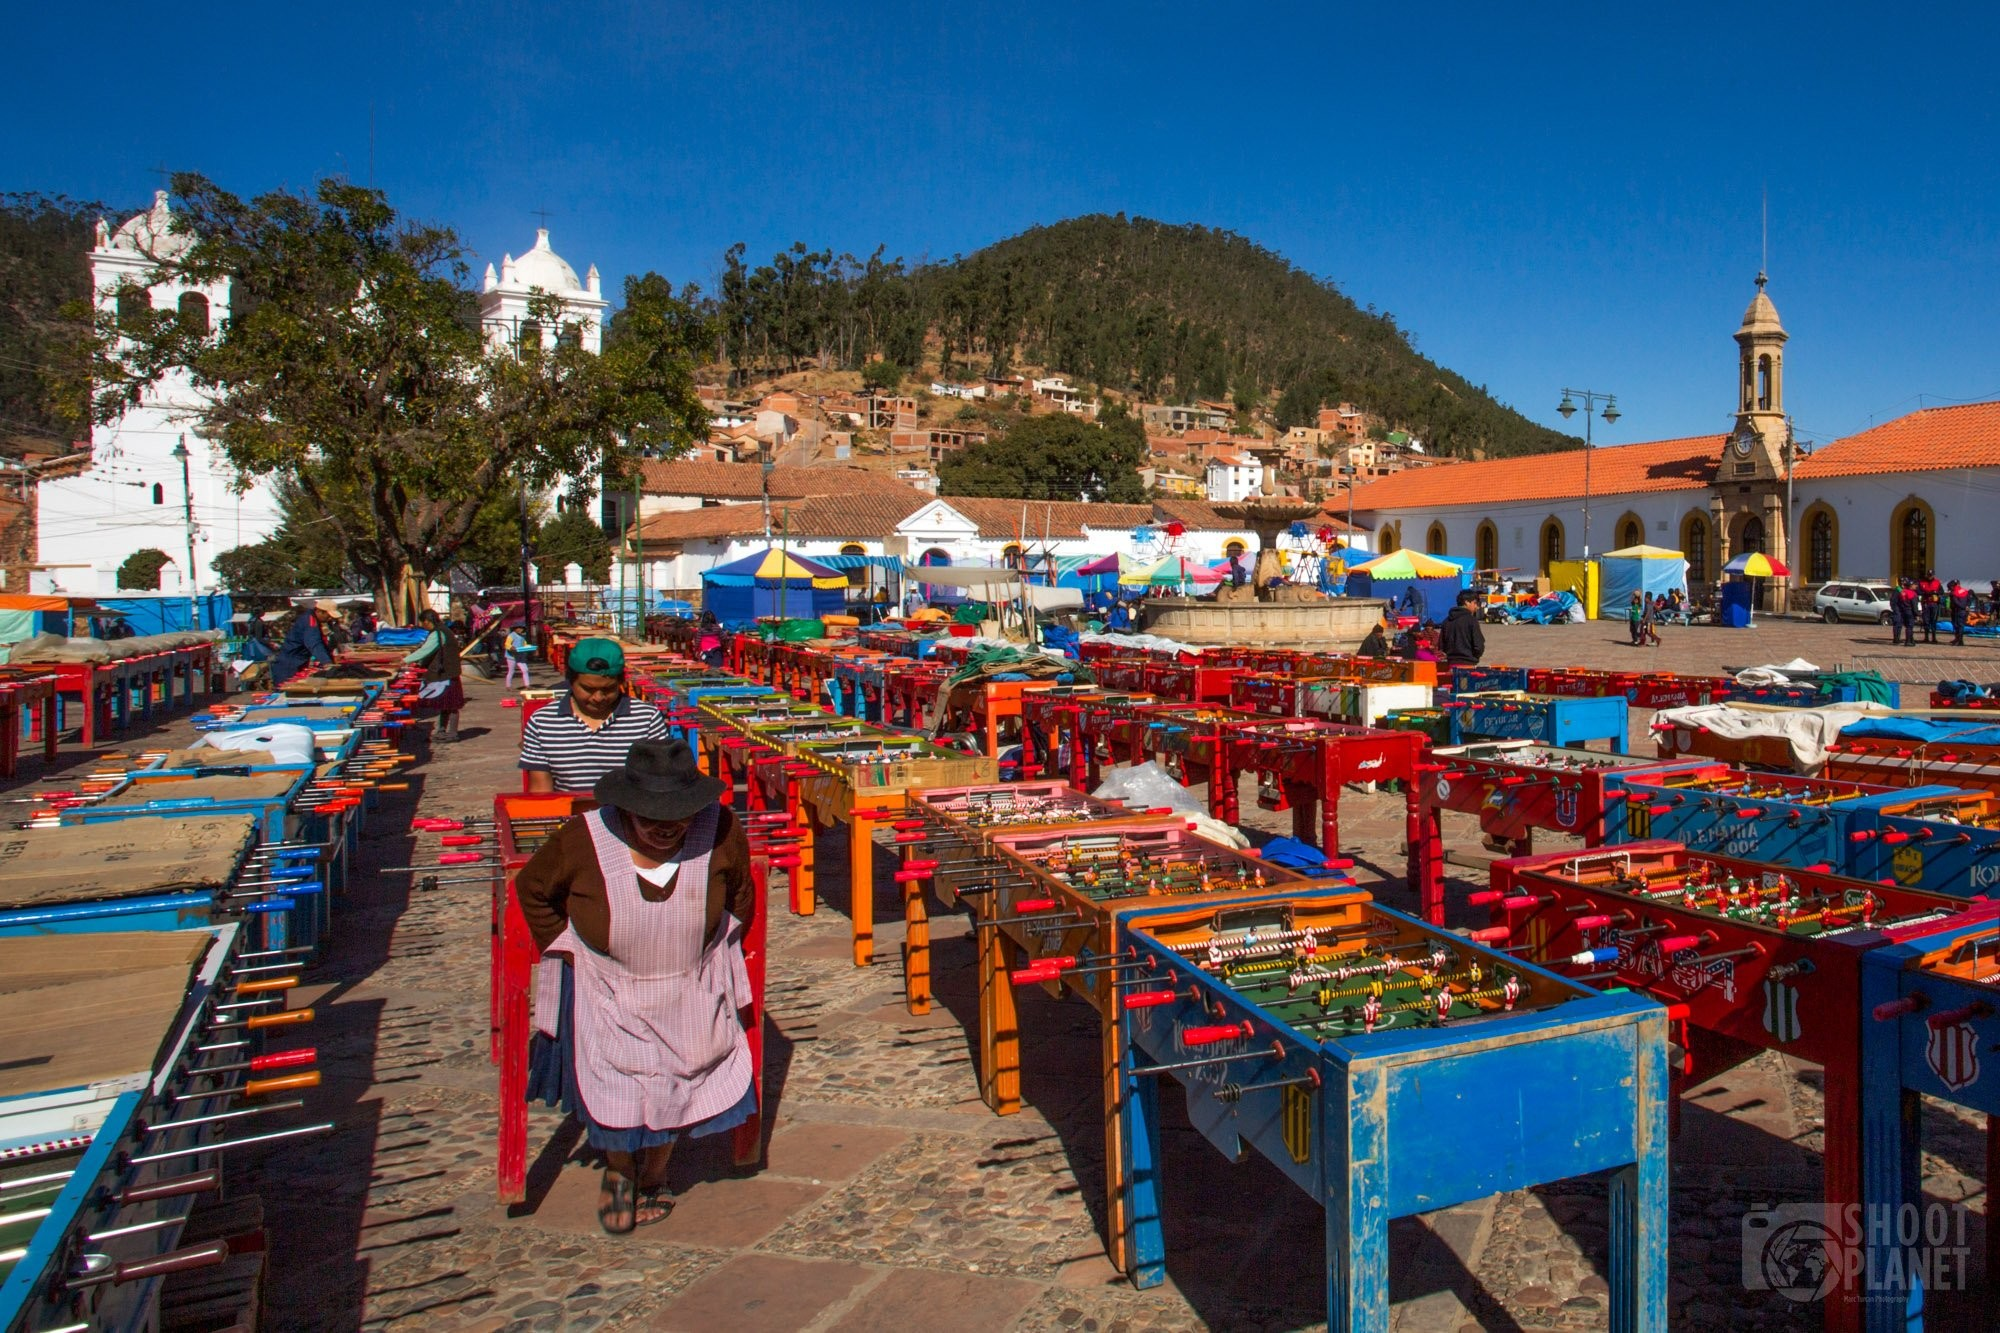 Baby-foot tournament in Sucre, Bolivia